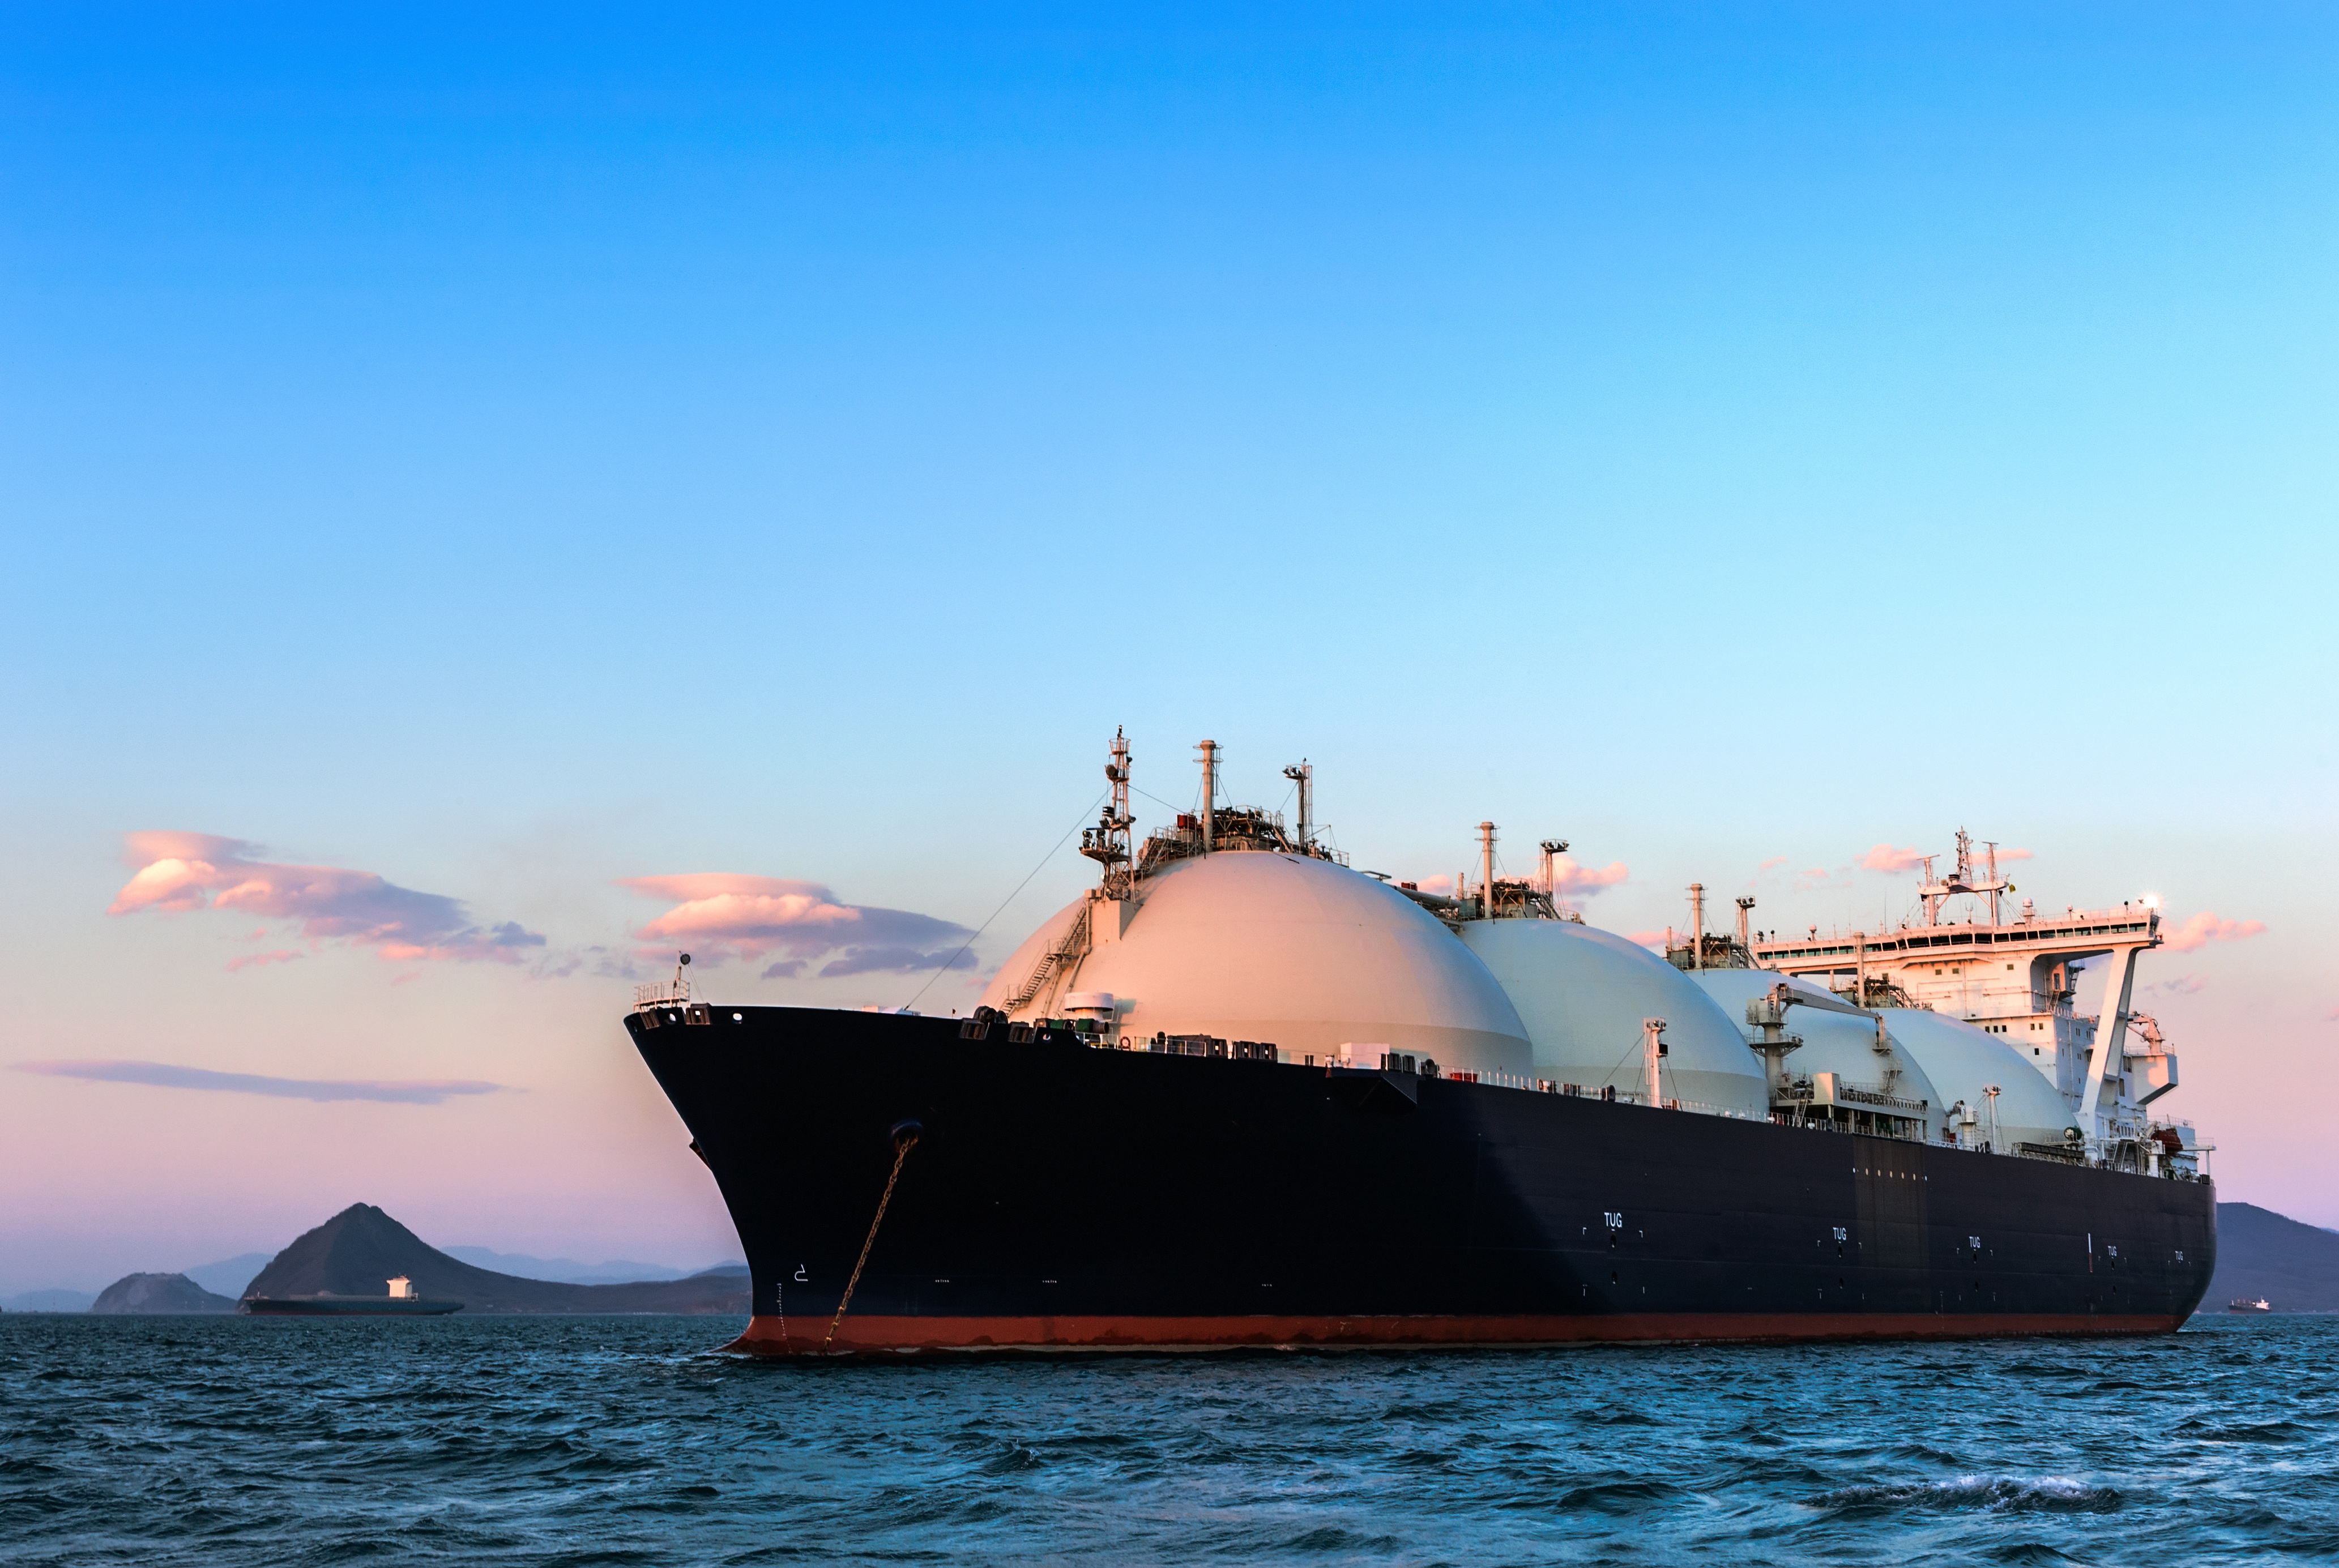 Glencore to send its first spot LNG cargo to Zhoushan